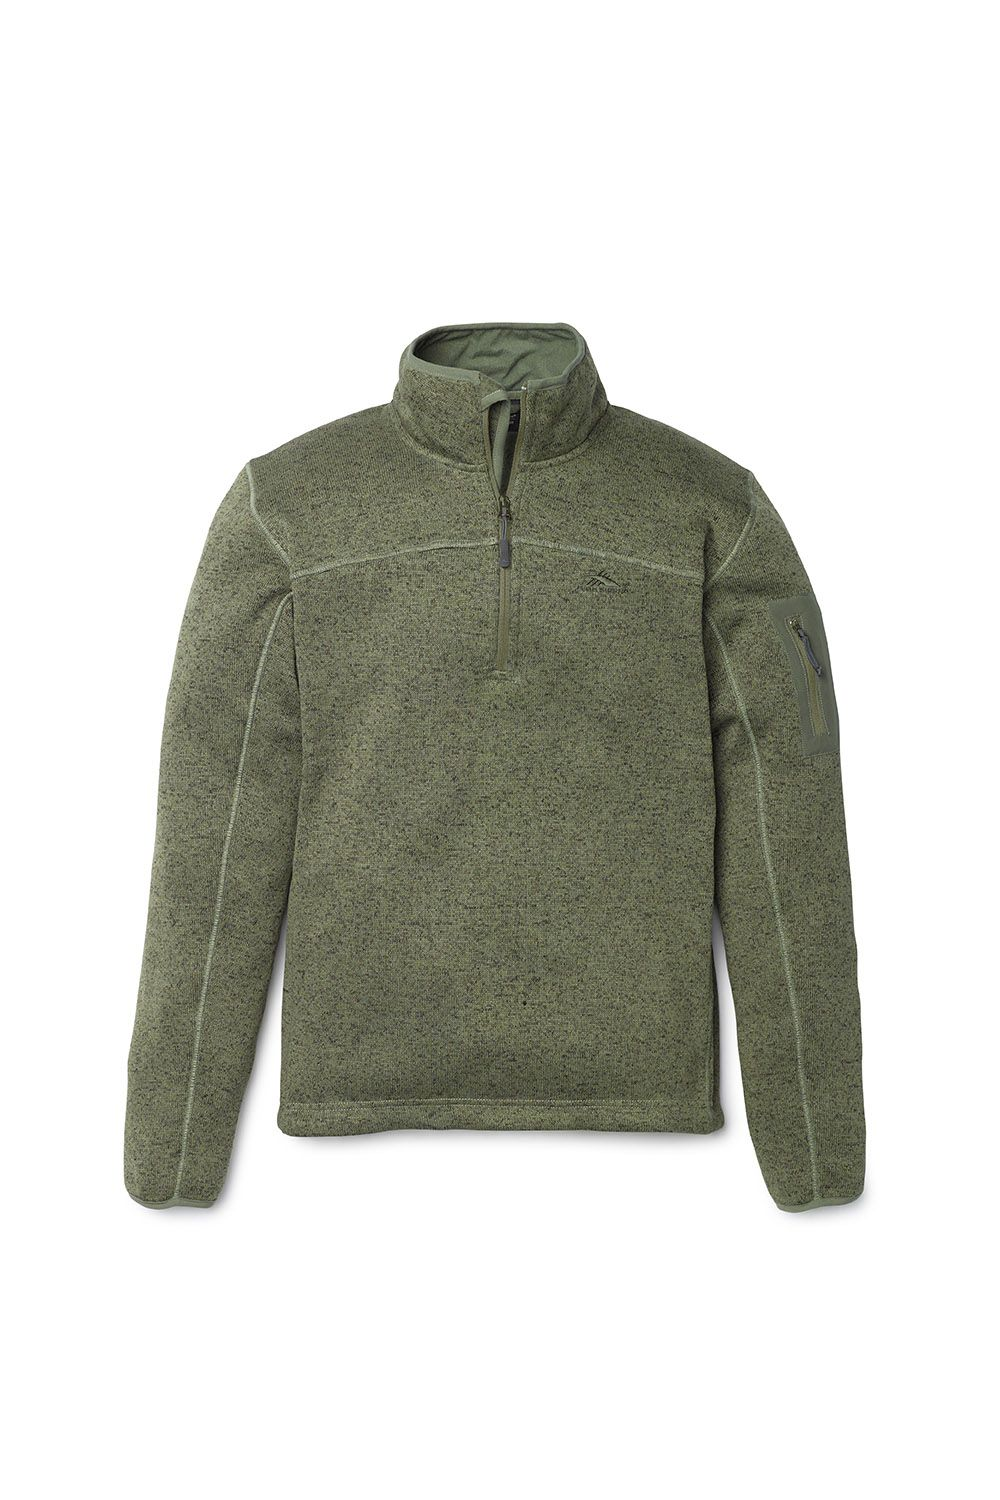 High Sierra Mens Funston Quarter Zip Pullover